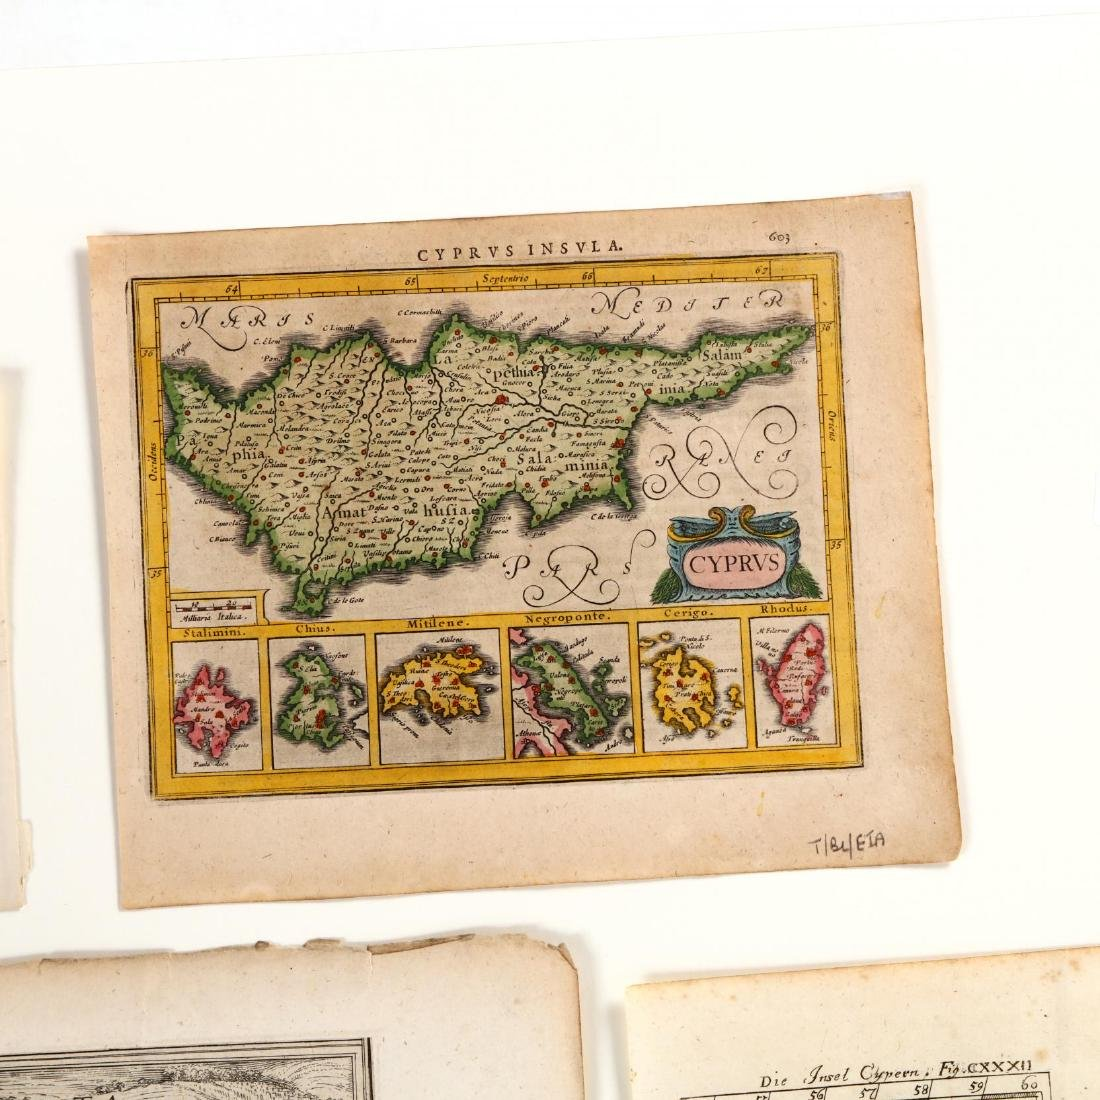 Four Small Antique Maps Pertaining to Cyprus - 2